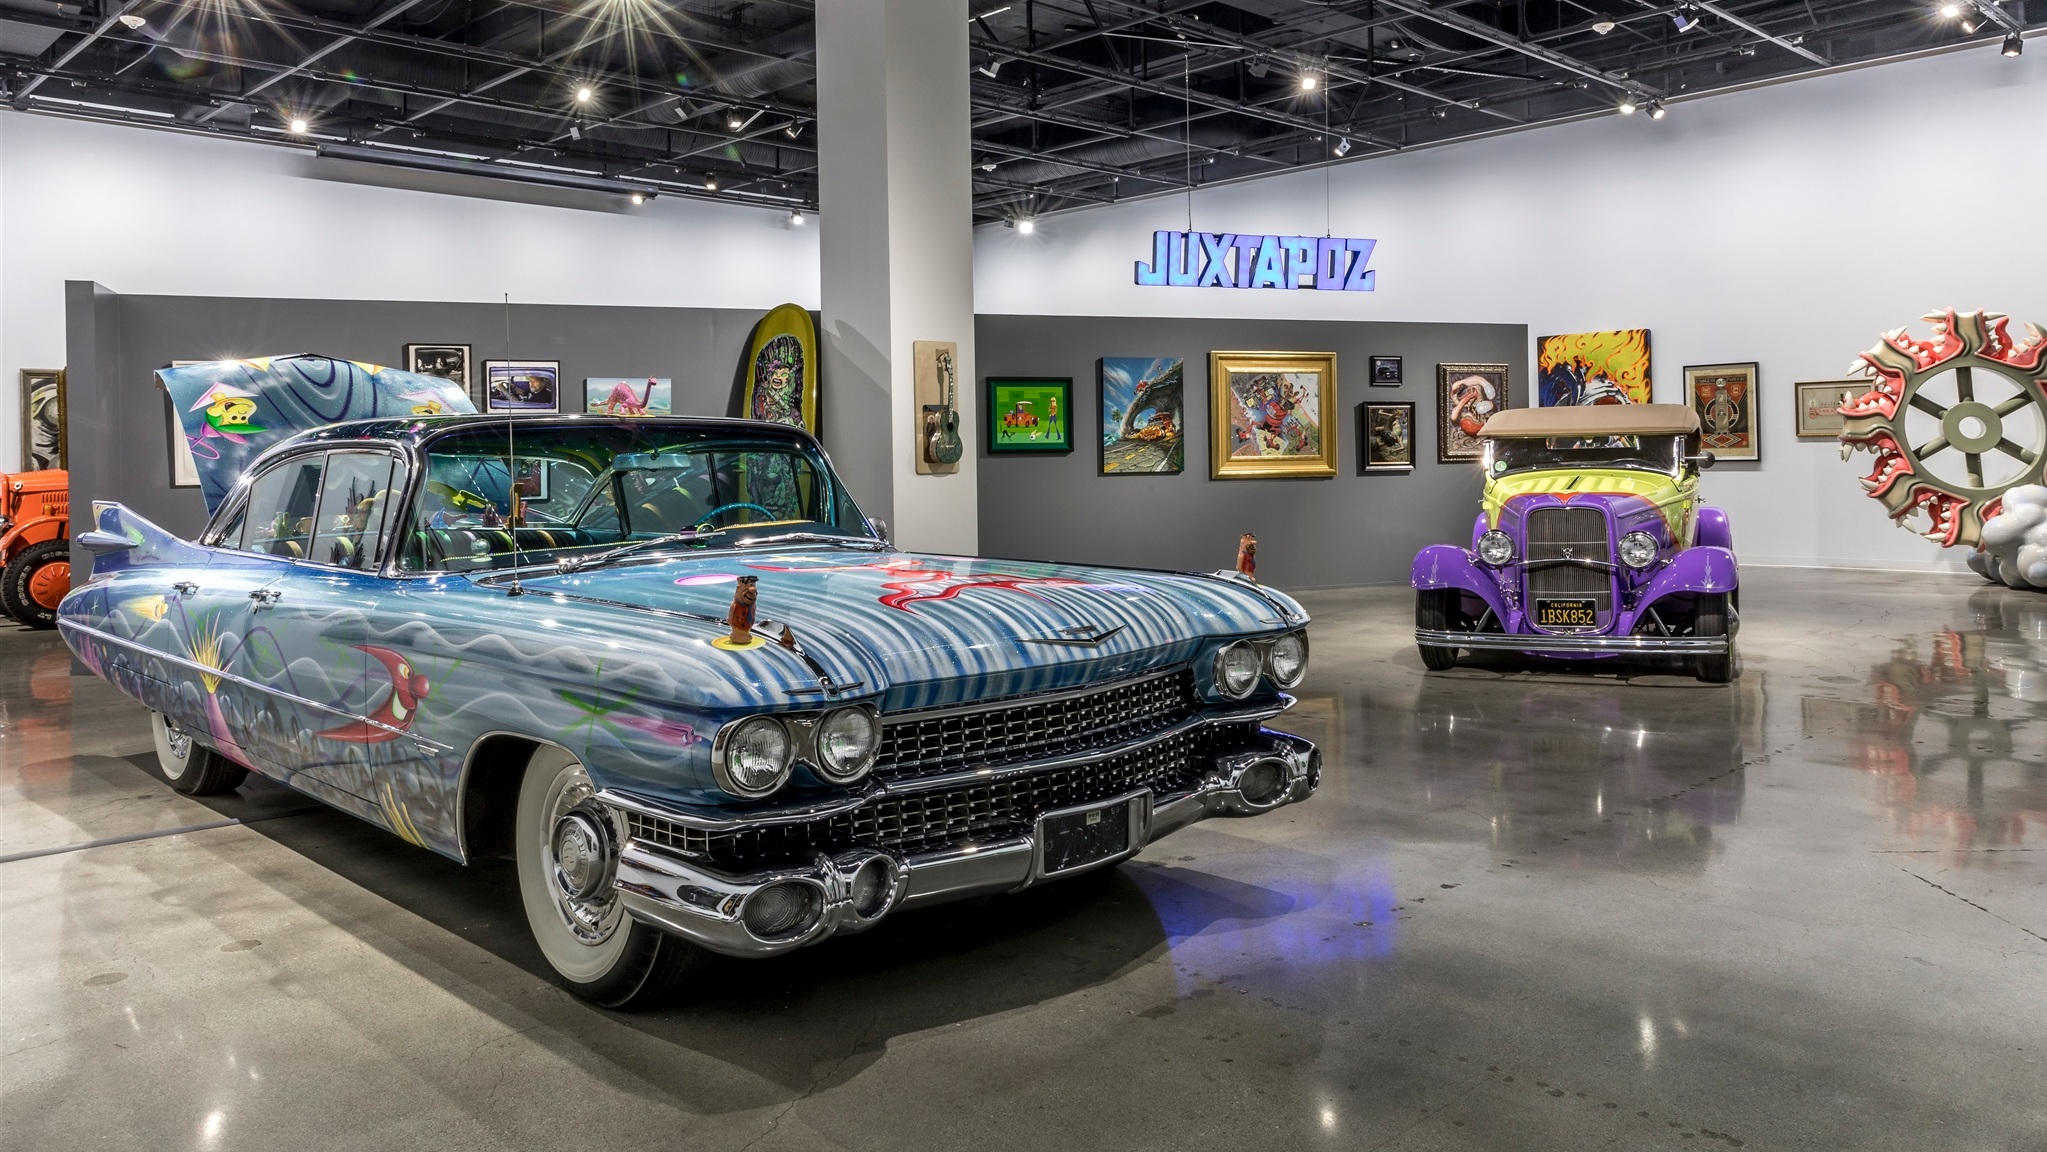 Petersen Automotive Museum to Present New Art and Automobile Exhibit Featuring Artists from Juxtapoz Magazine -